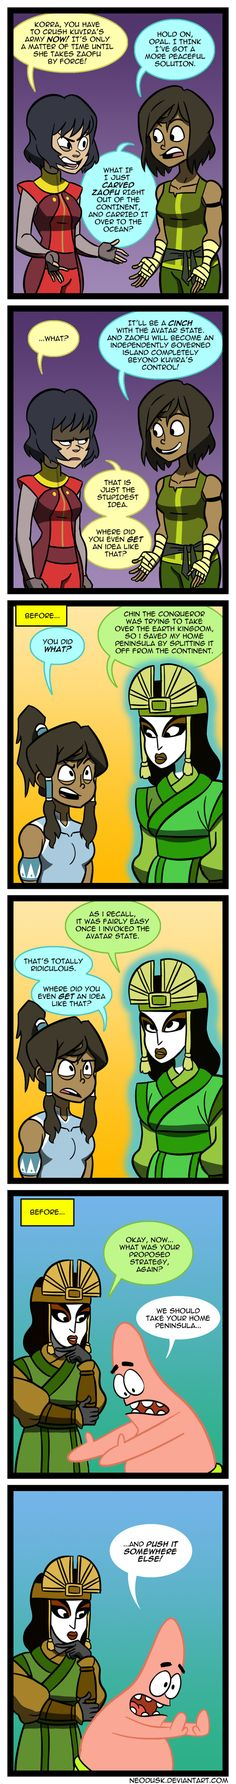 LoK: Outdated Ideas by Neodusk.deviantart.com on @deviantART